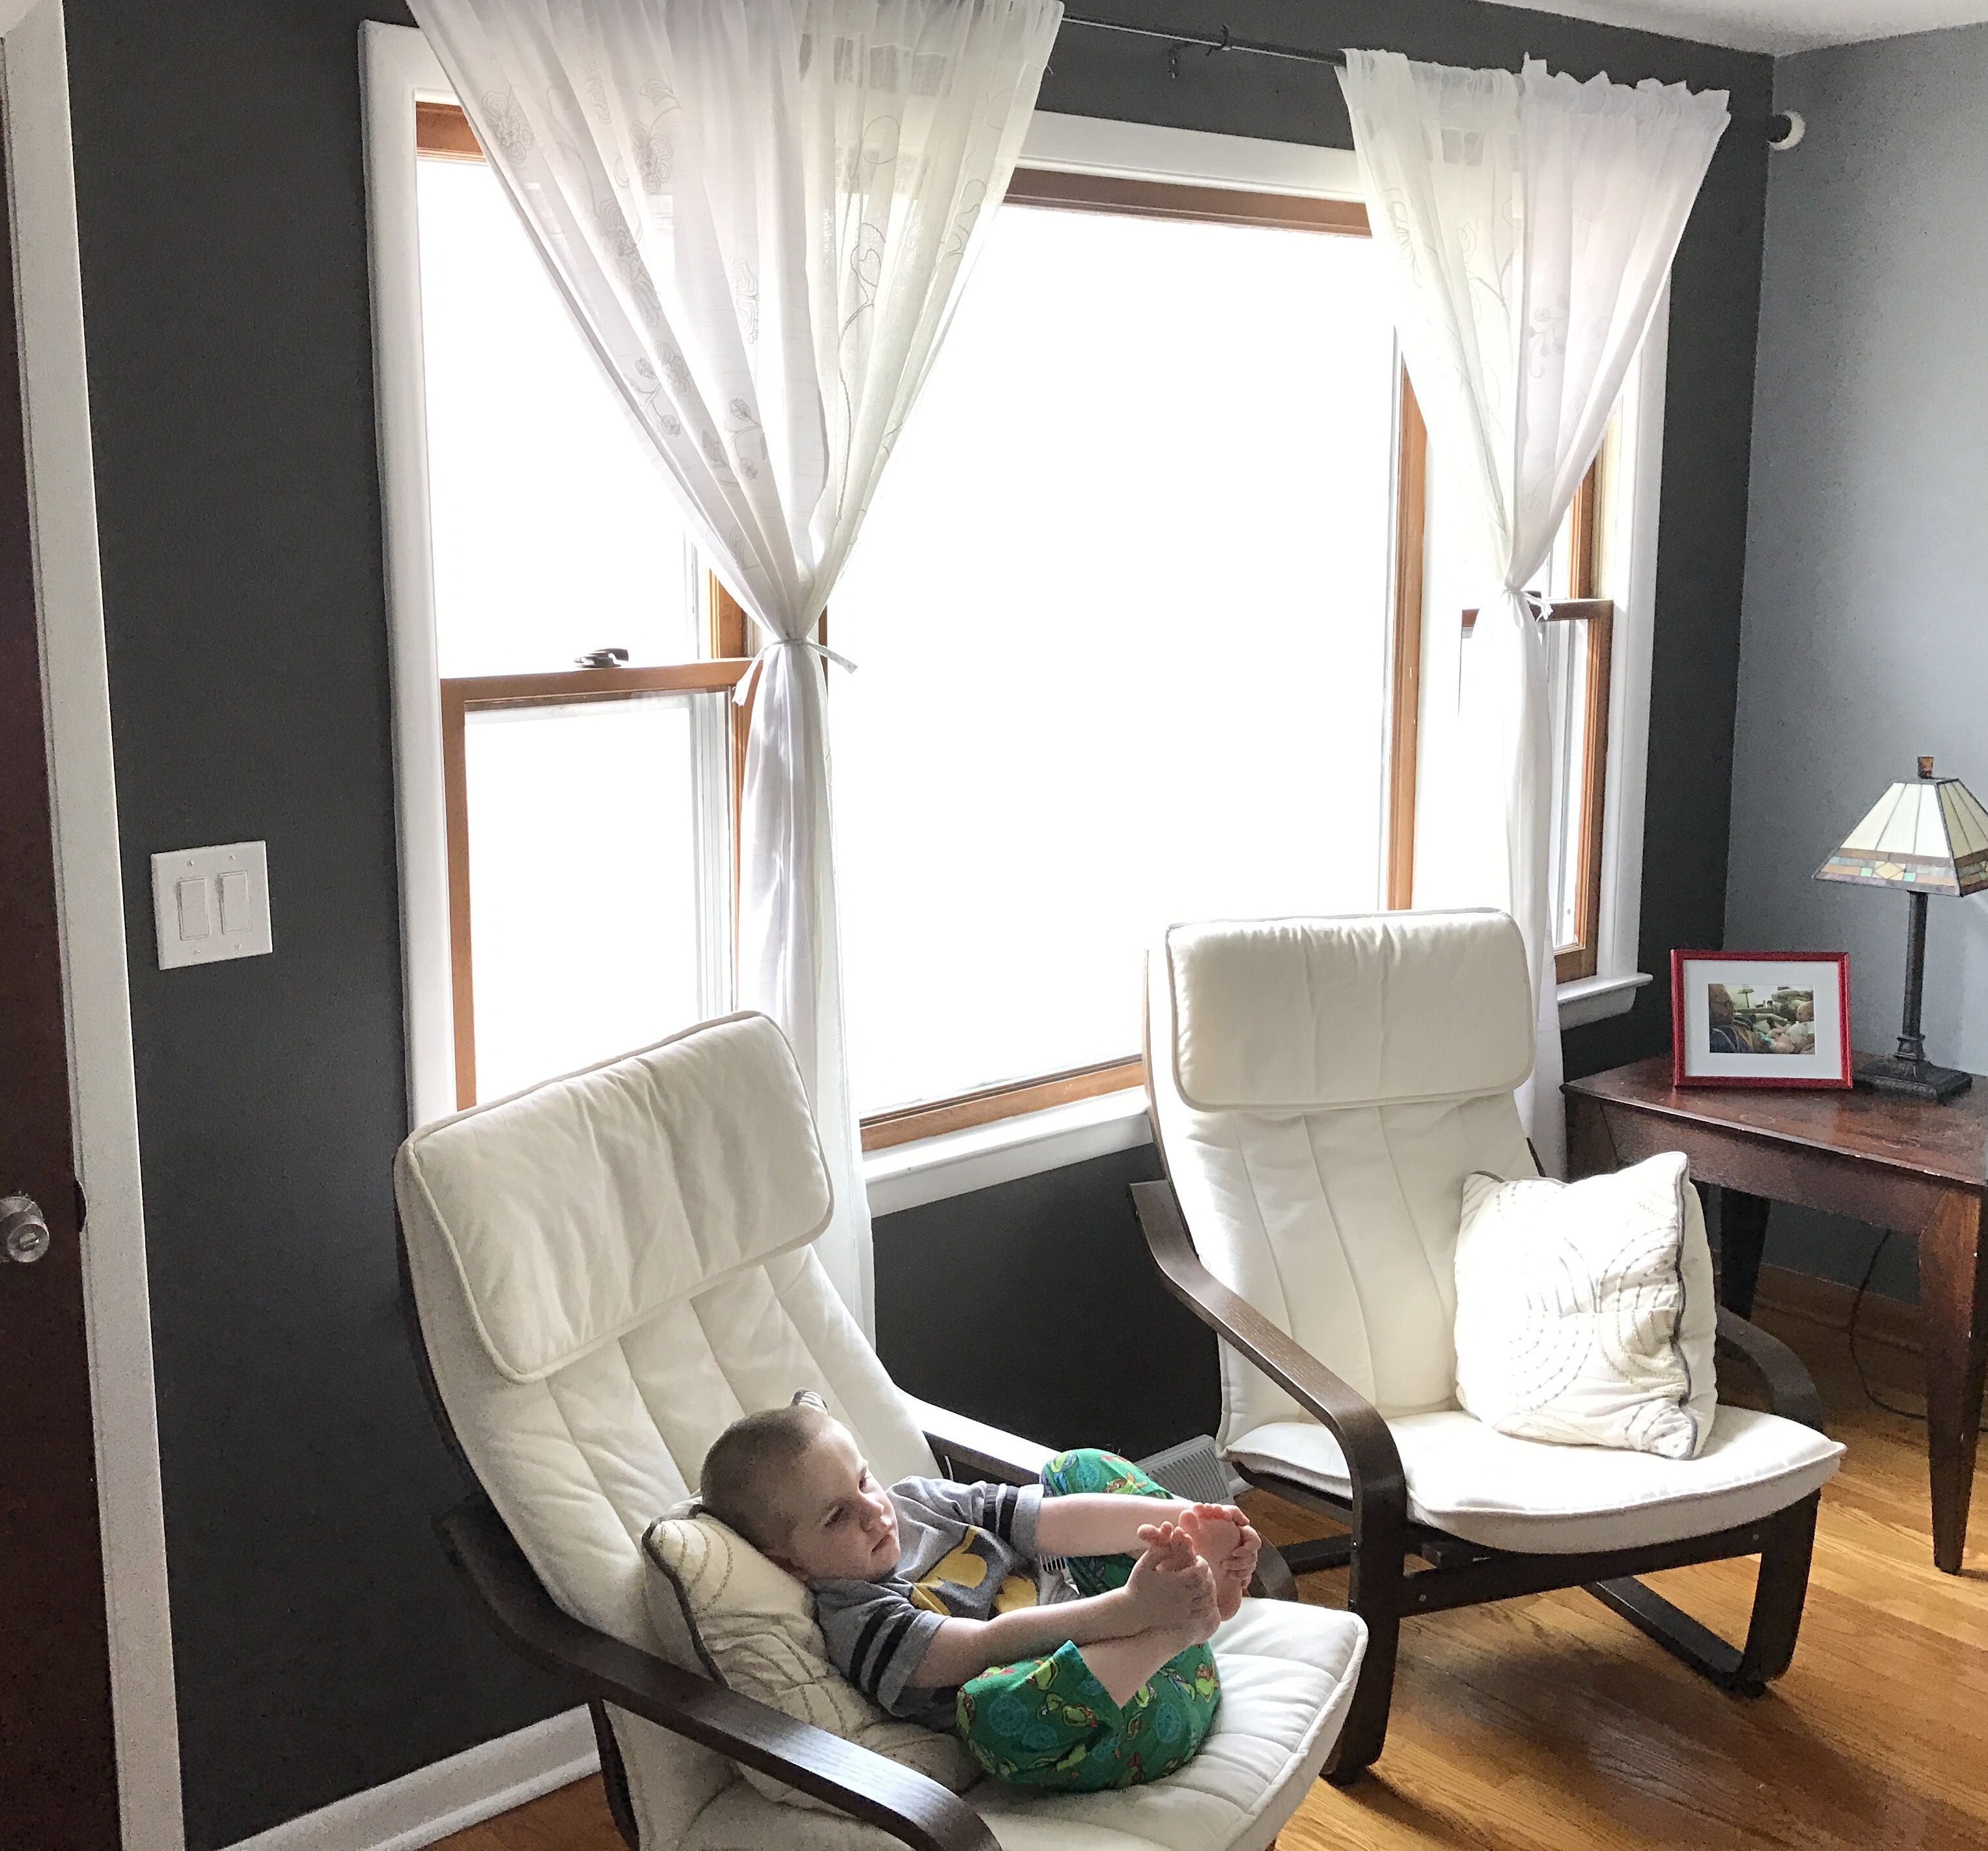 Behr Intellectual Accent Wall, With Two-toned Window Trim